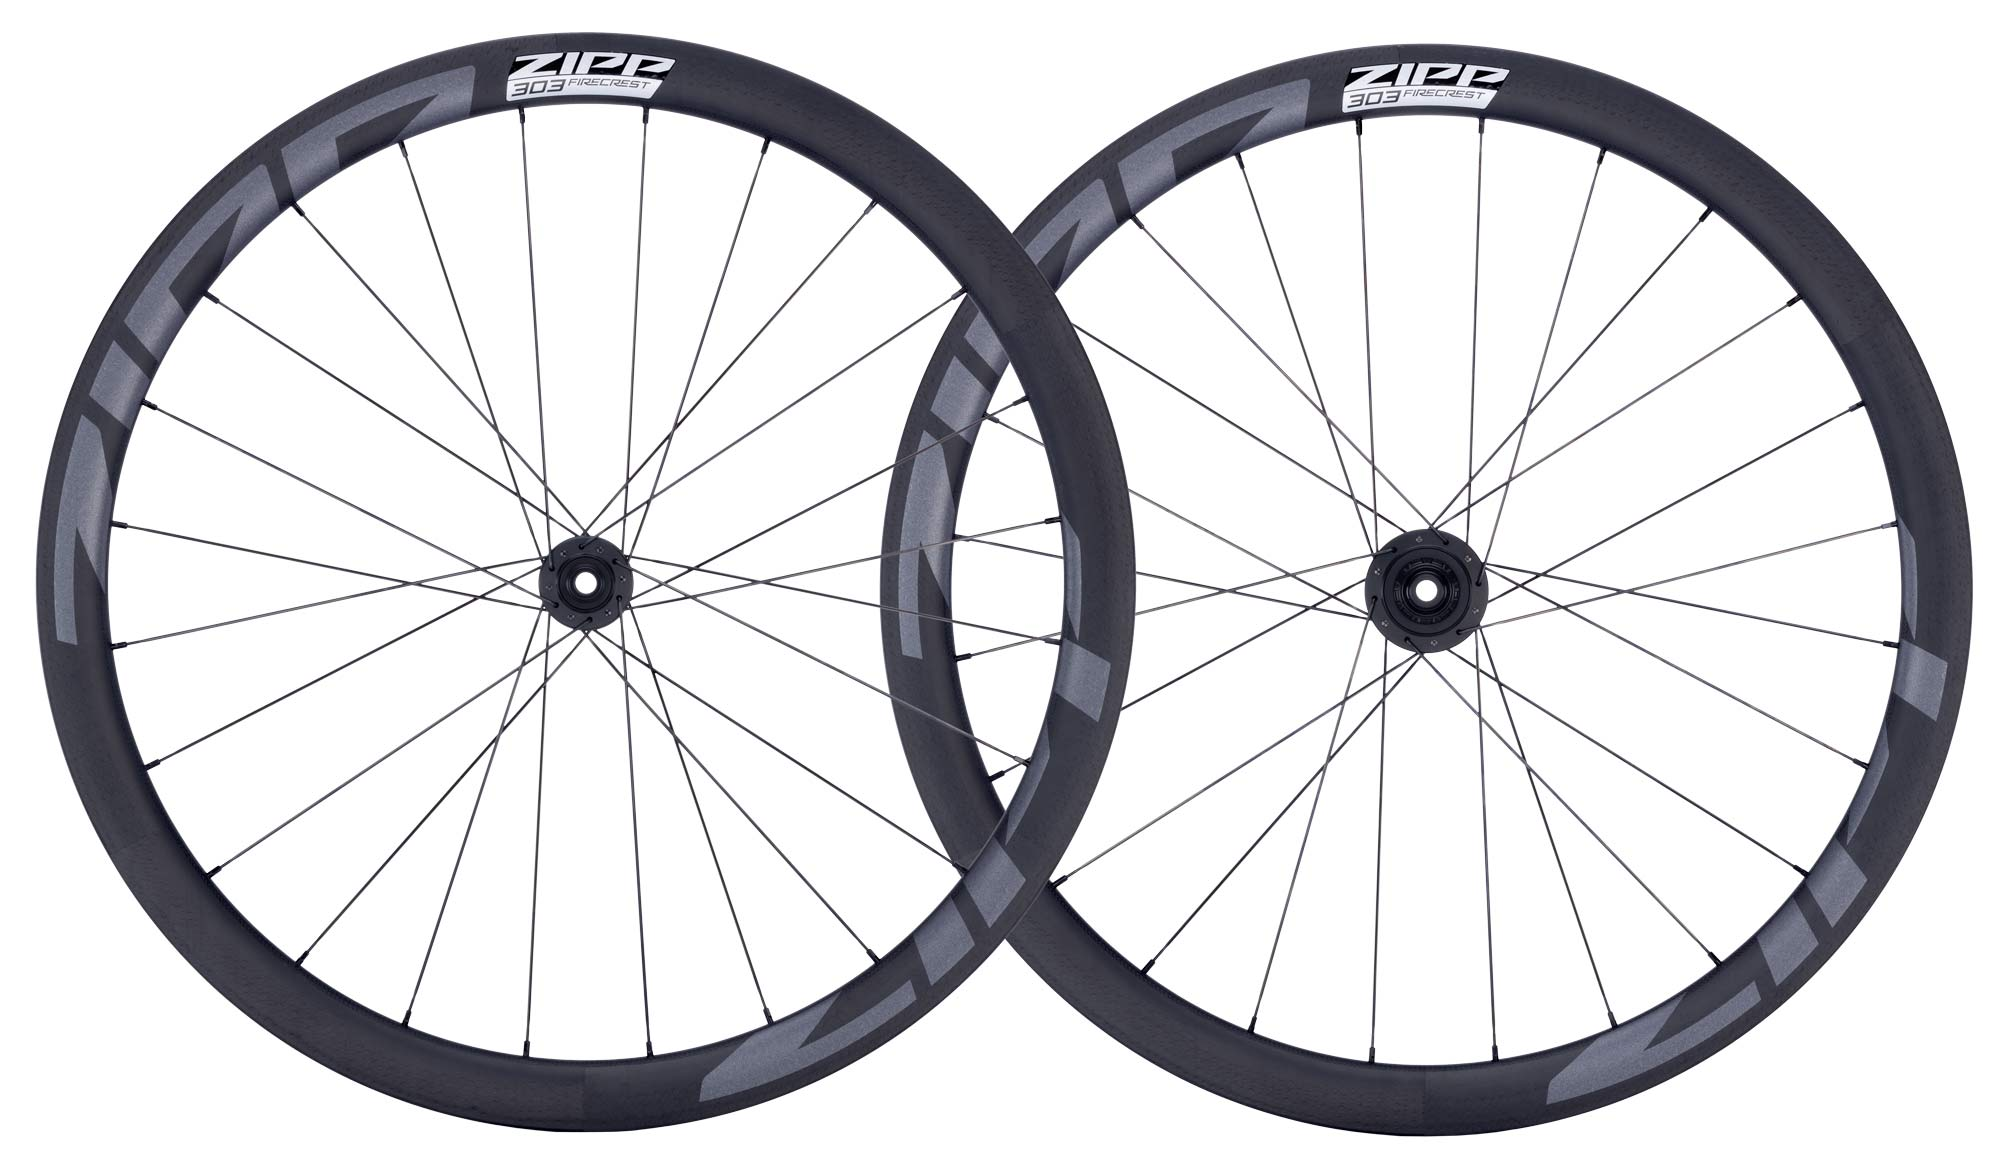 new disc brake hookless tubeless zipp 303 firecrest wheels will also come with a rim brake version using the older 303 rims